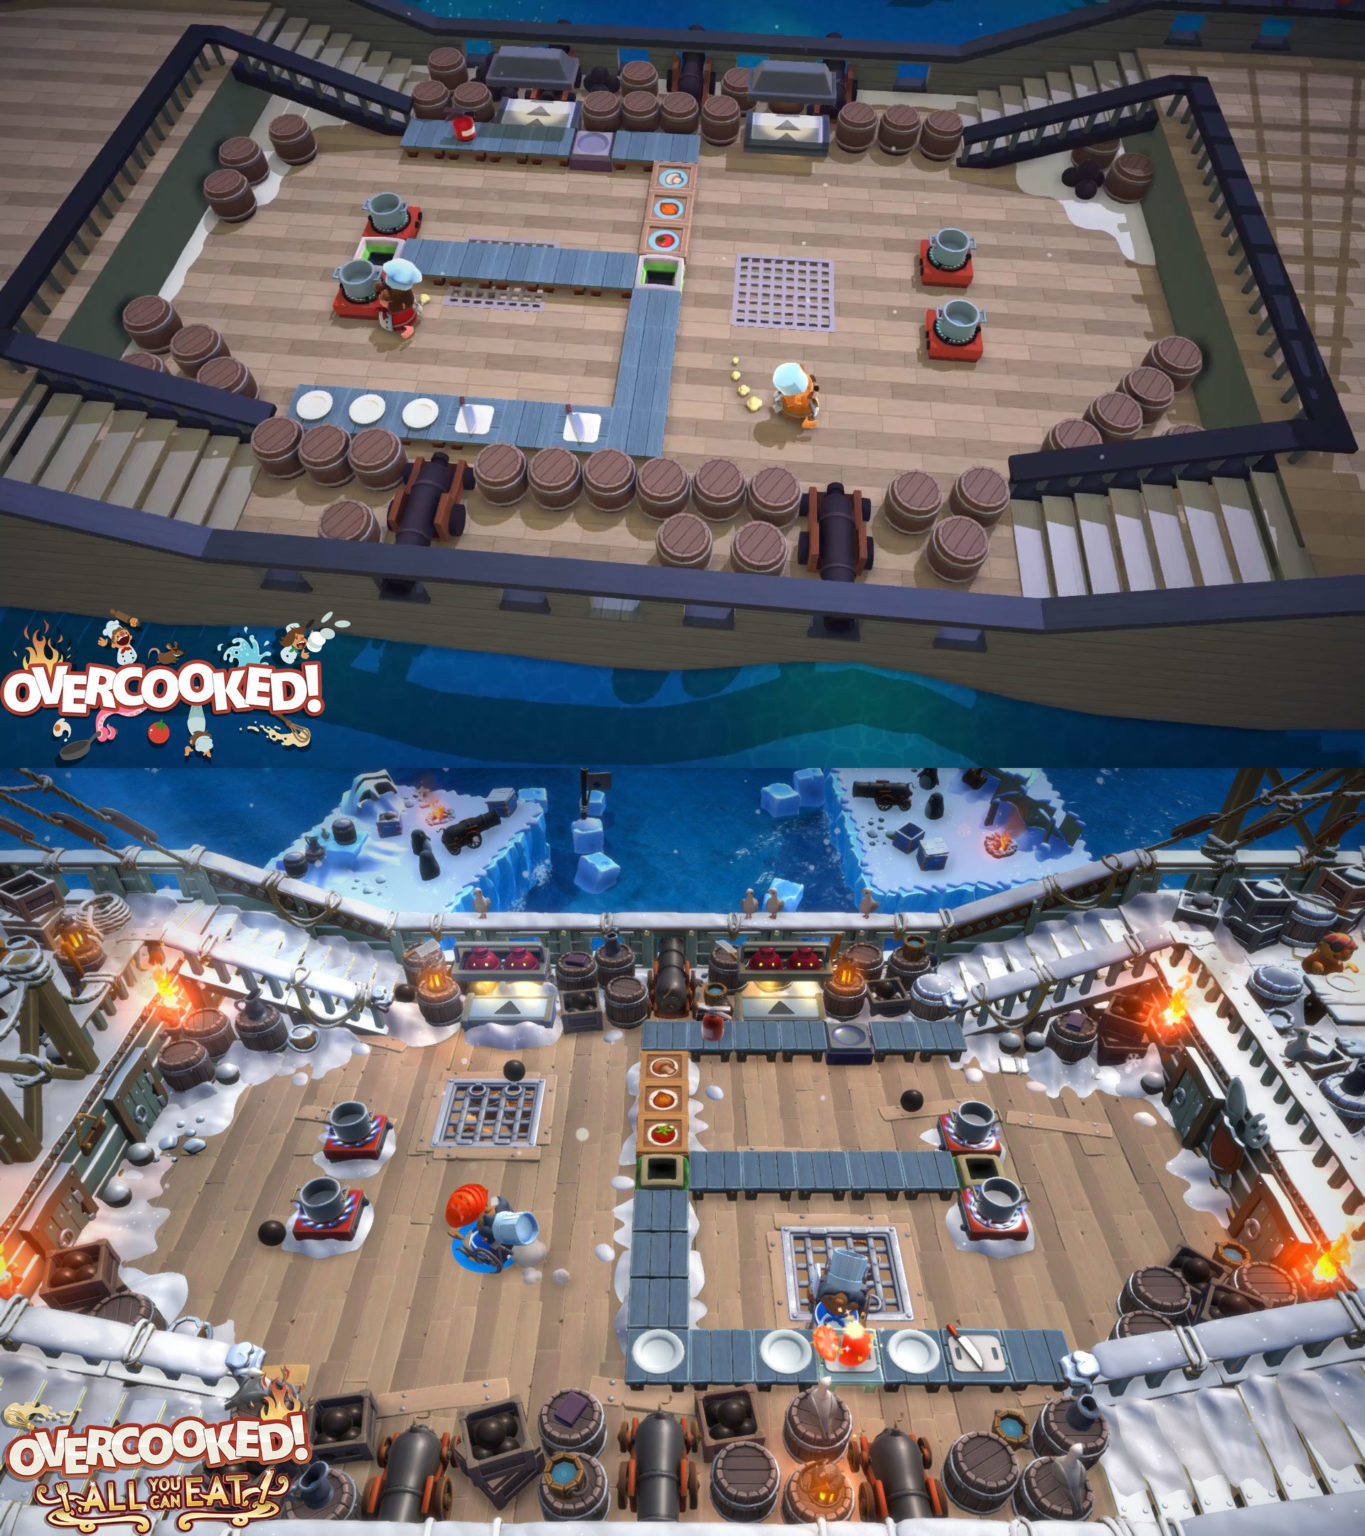 In Overcooked: All You Can Eat, the original Overcooked 1 levels were remastered to look and feel like Overcooked 2.